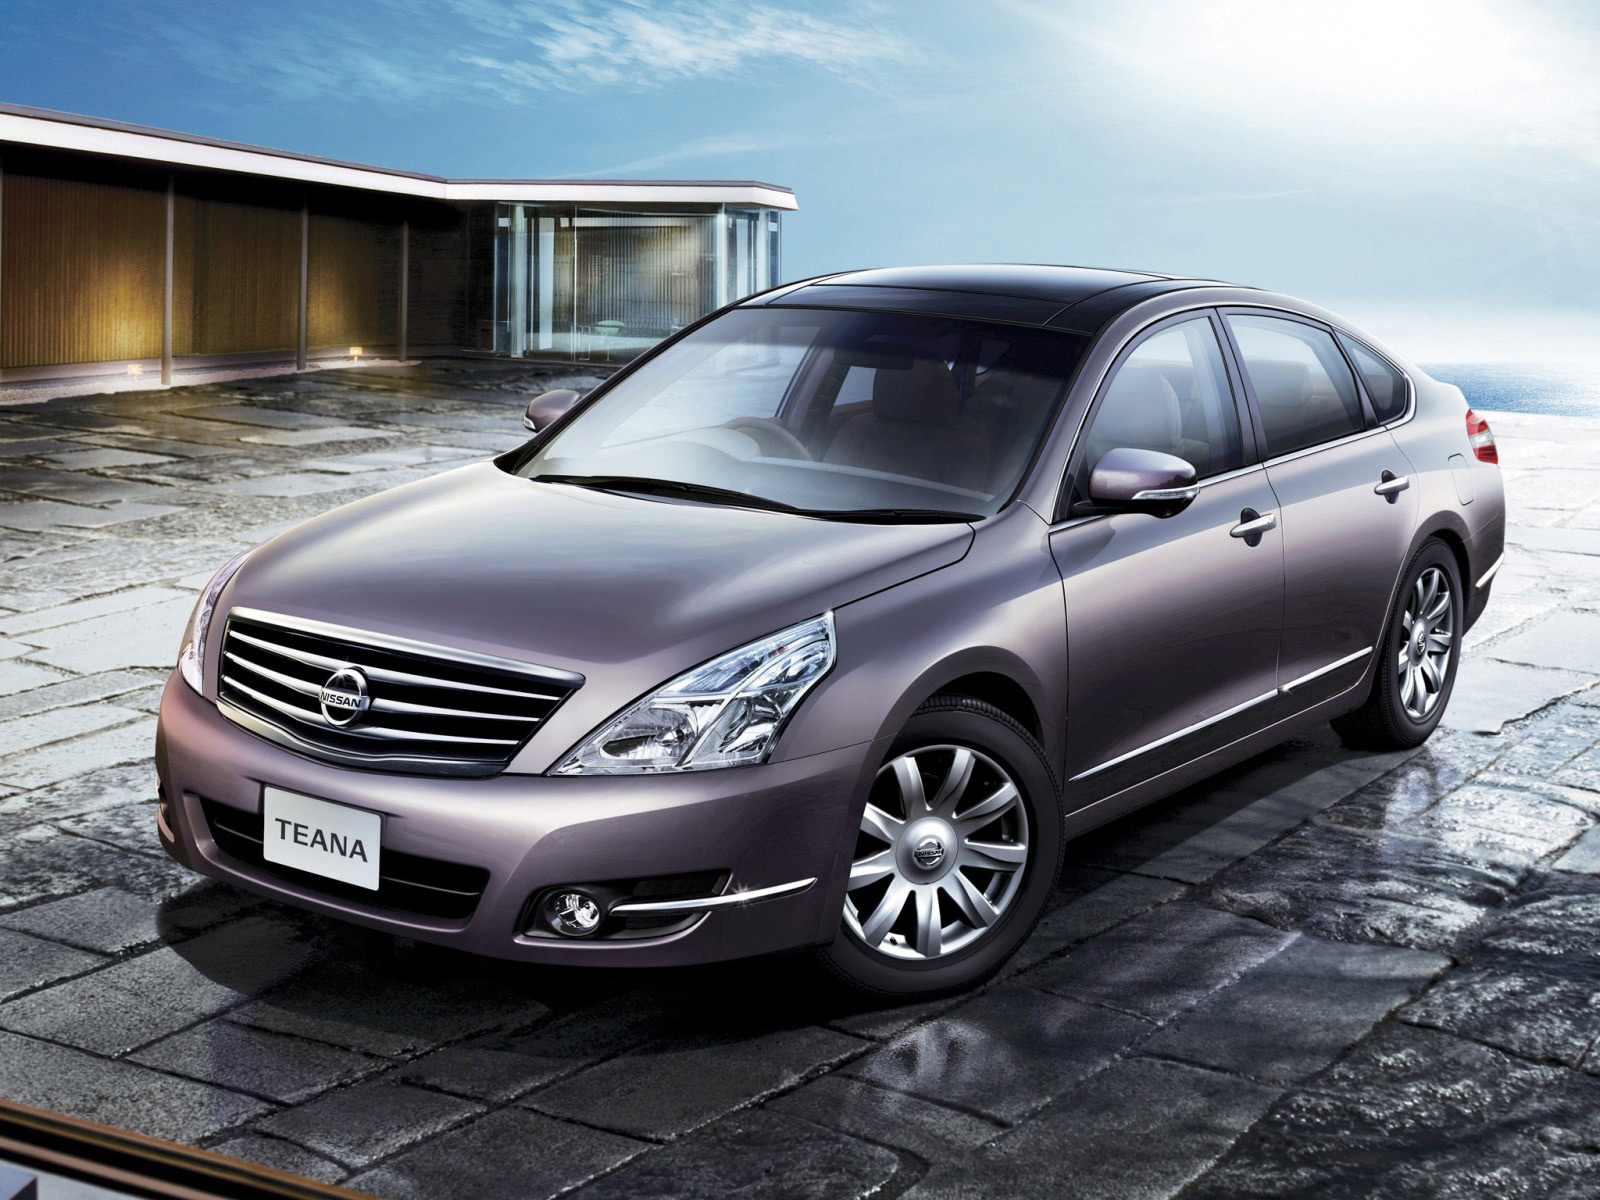 My Perfect Nissan Teana. 3DTuning